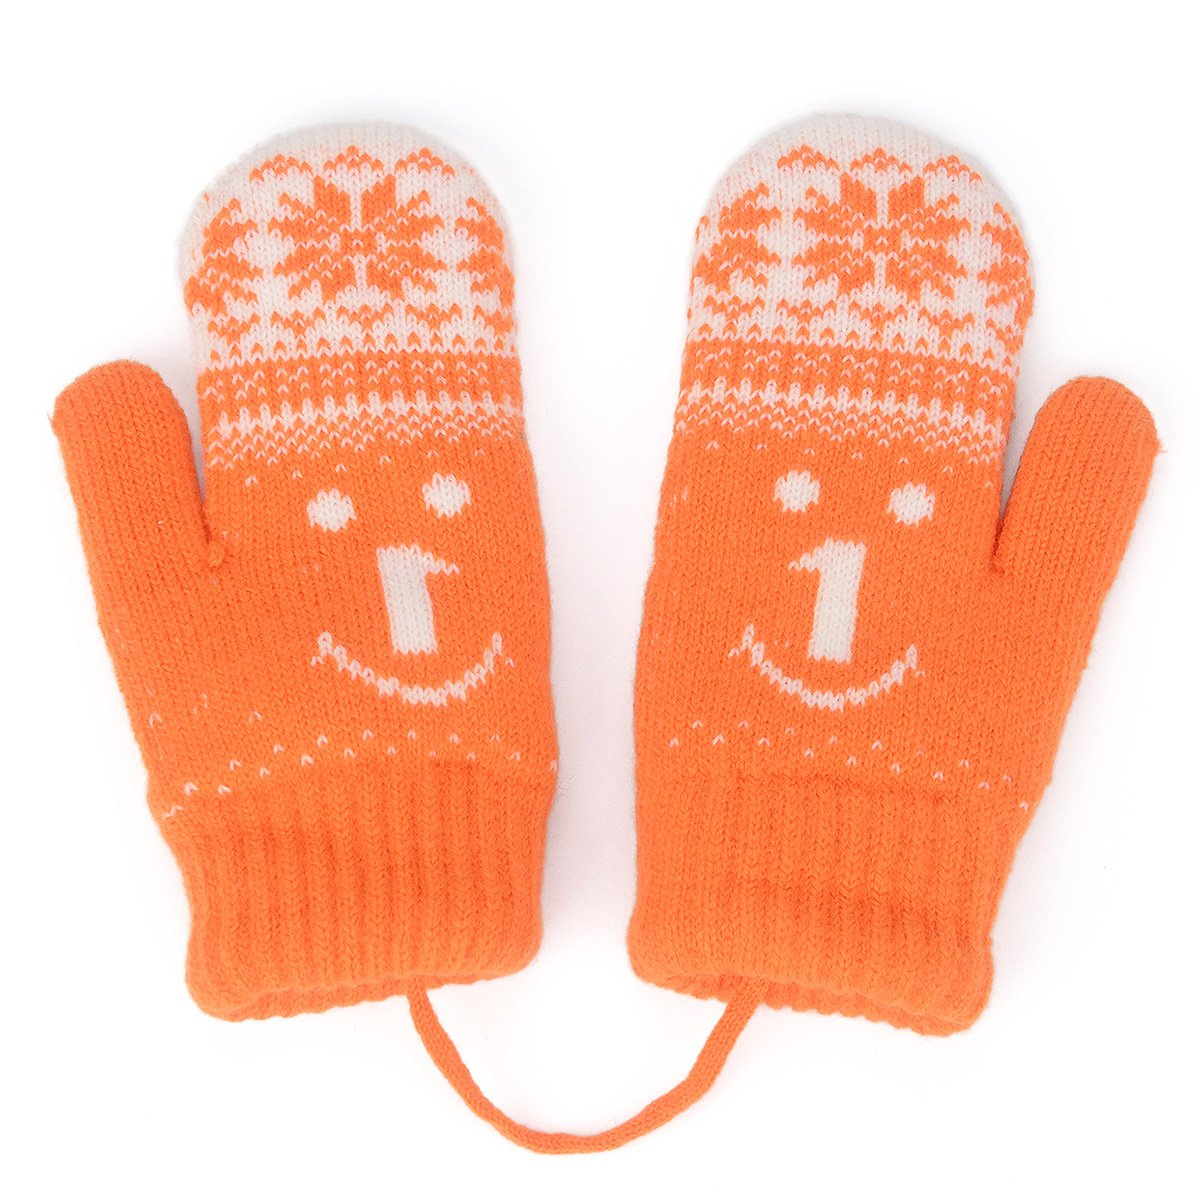 HomeDay Kids Winter Knitted Mittens with String Thicken Gloves Fleece-Lined